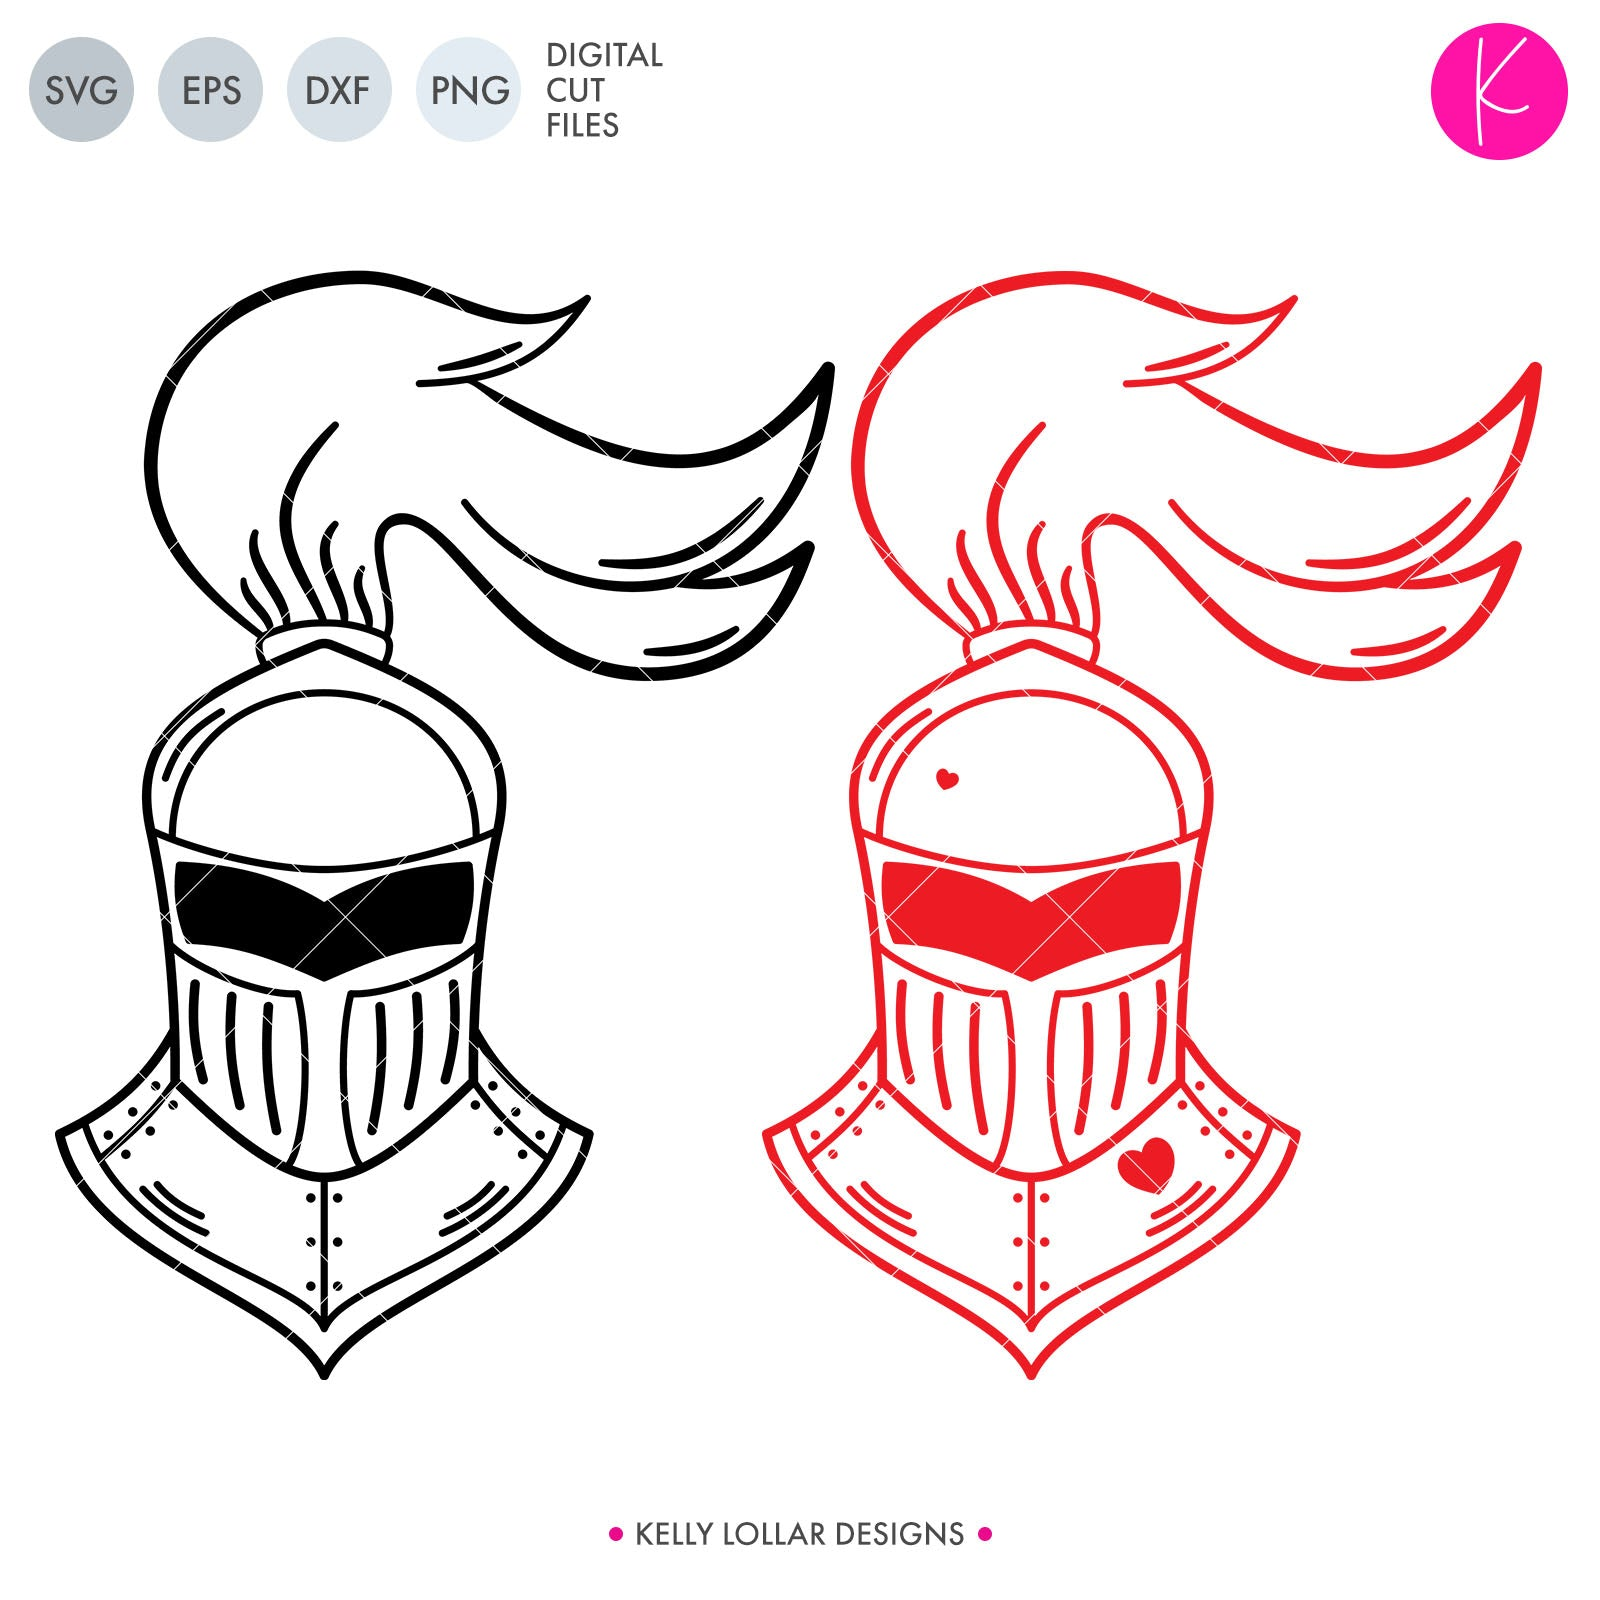 Knight Helmet | SVG DXF EPS PNG Cut Files KNIGHT HELM | SVG DXF EPS PNG Cut Files | Knight's Helmet with Plain and Heart Adorned VariationsHuzzah! Celebrate Valentine's with your little knight in shining armor with this cute